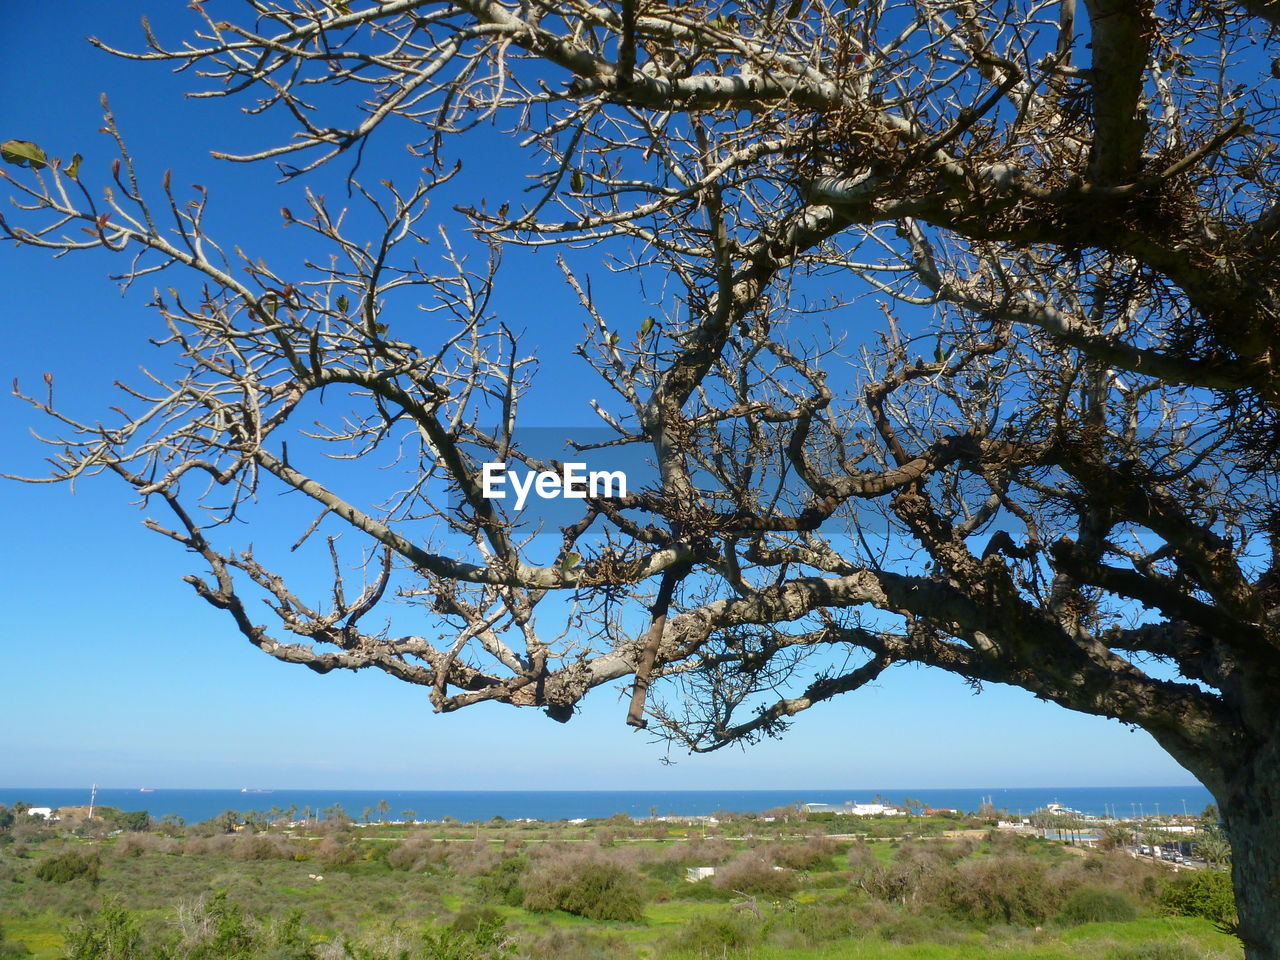 SCENIC VIEW OF TREE BY SEA AGAINST CLEAR SKY